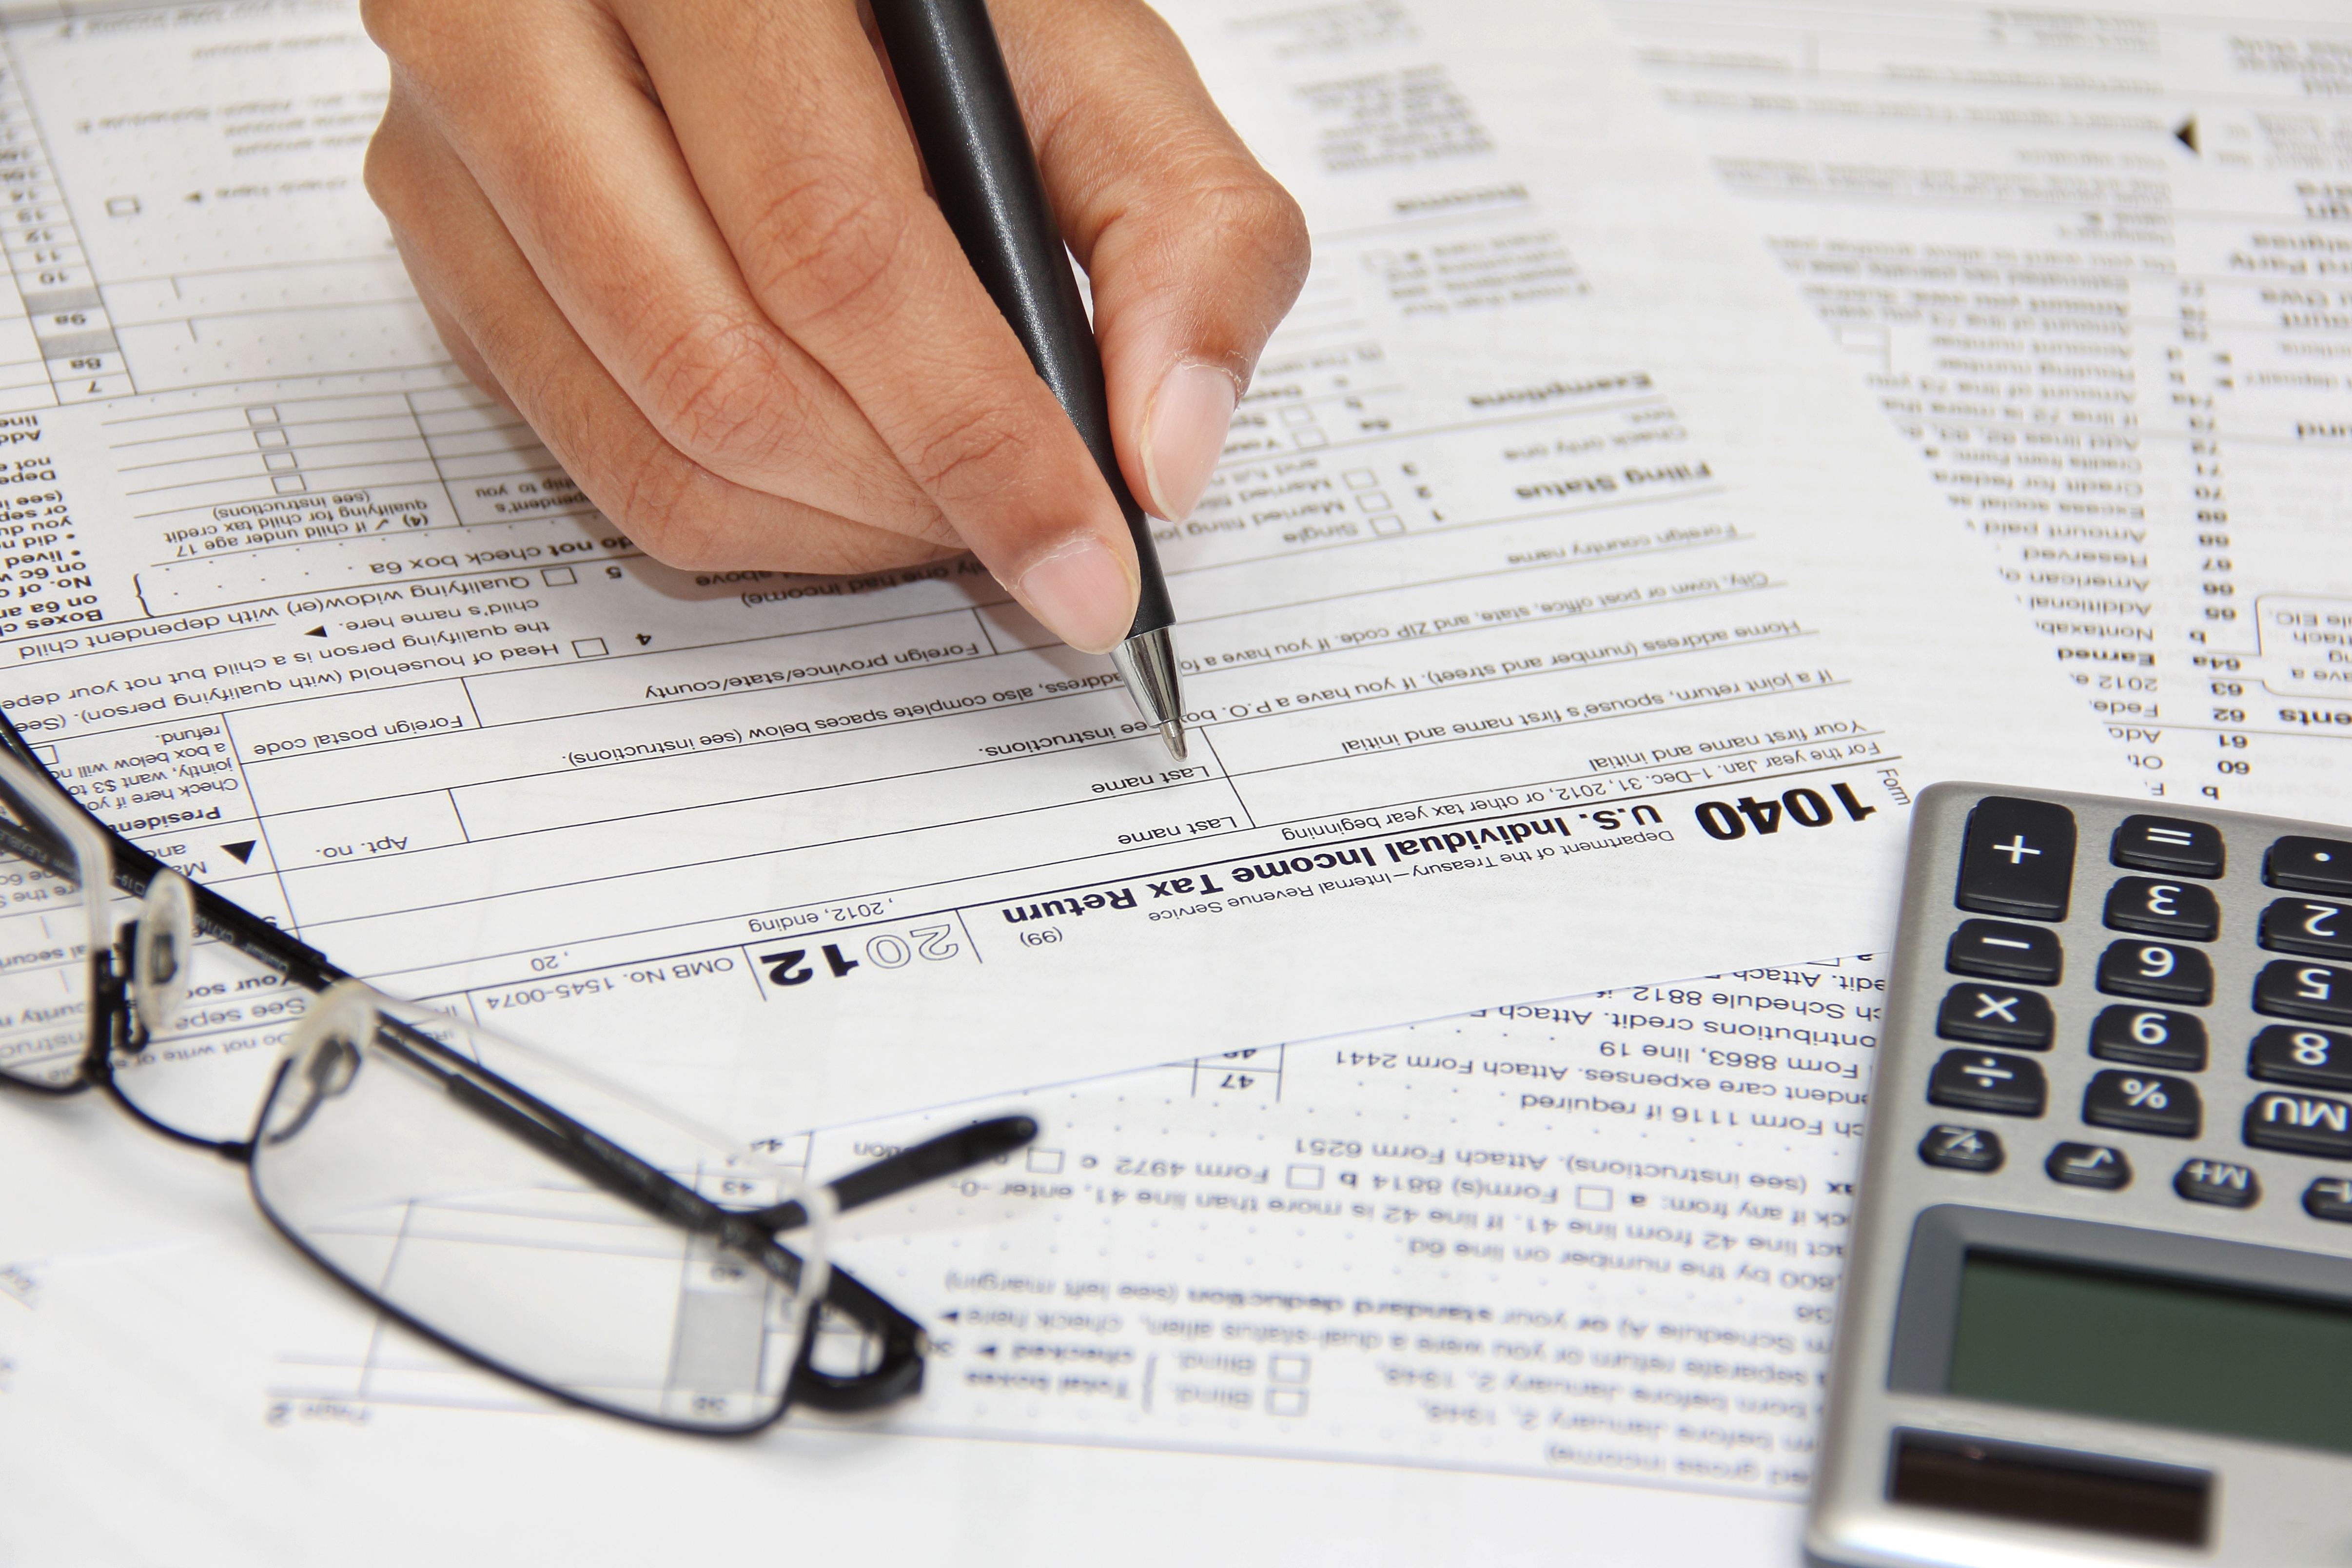 Form 1040 Tax Forms And Finance Virginia Community Healthcare